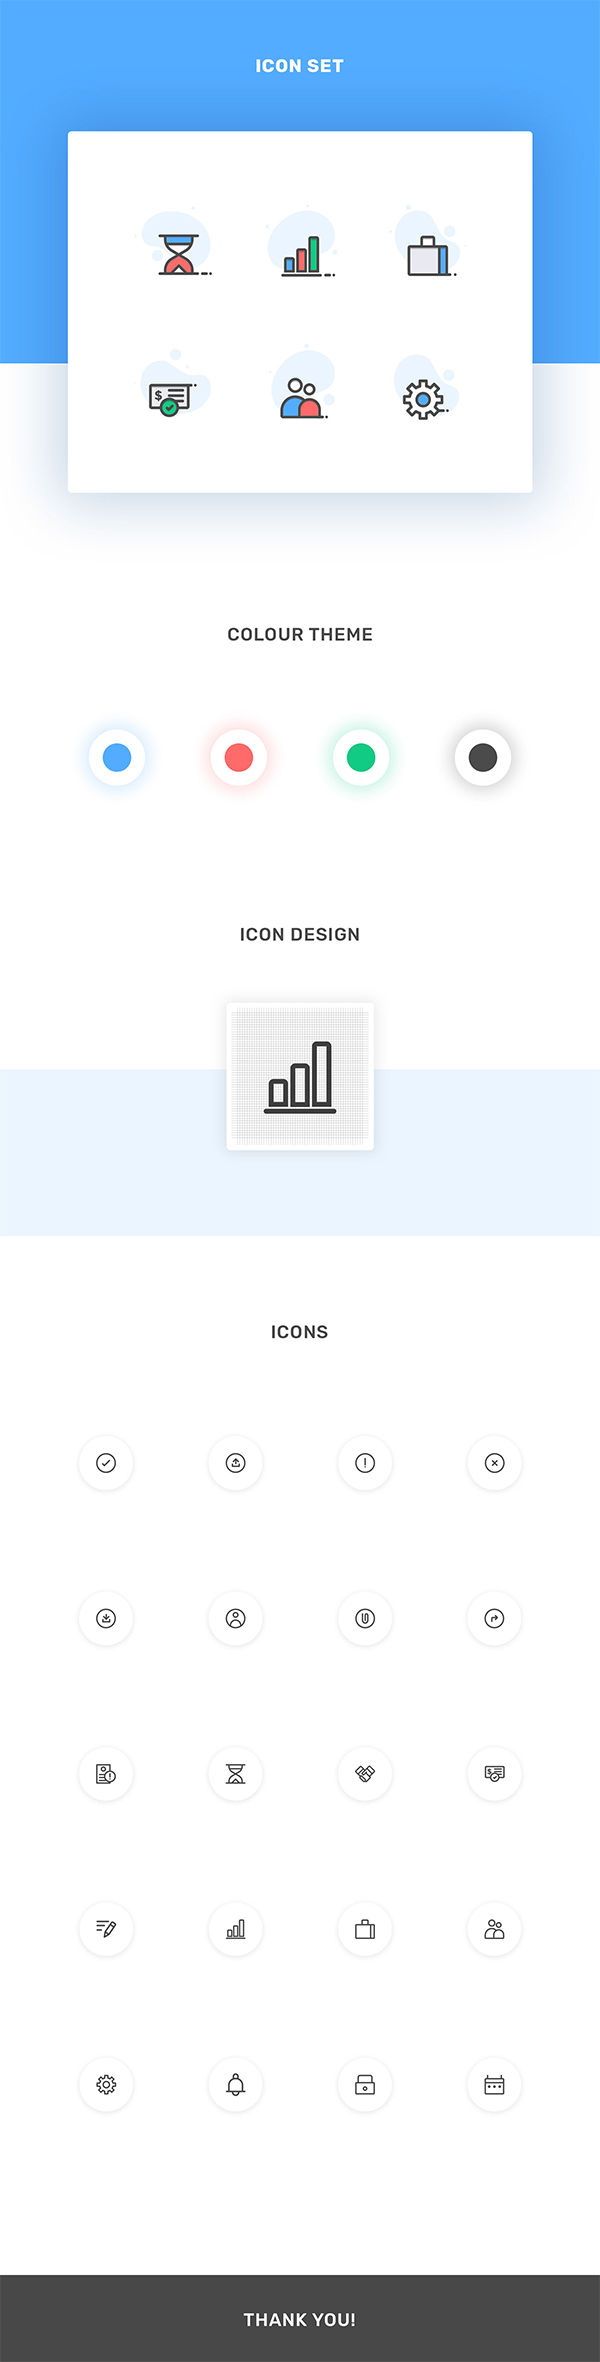 Icon Set - Free Download